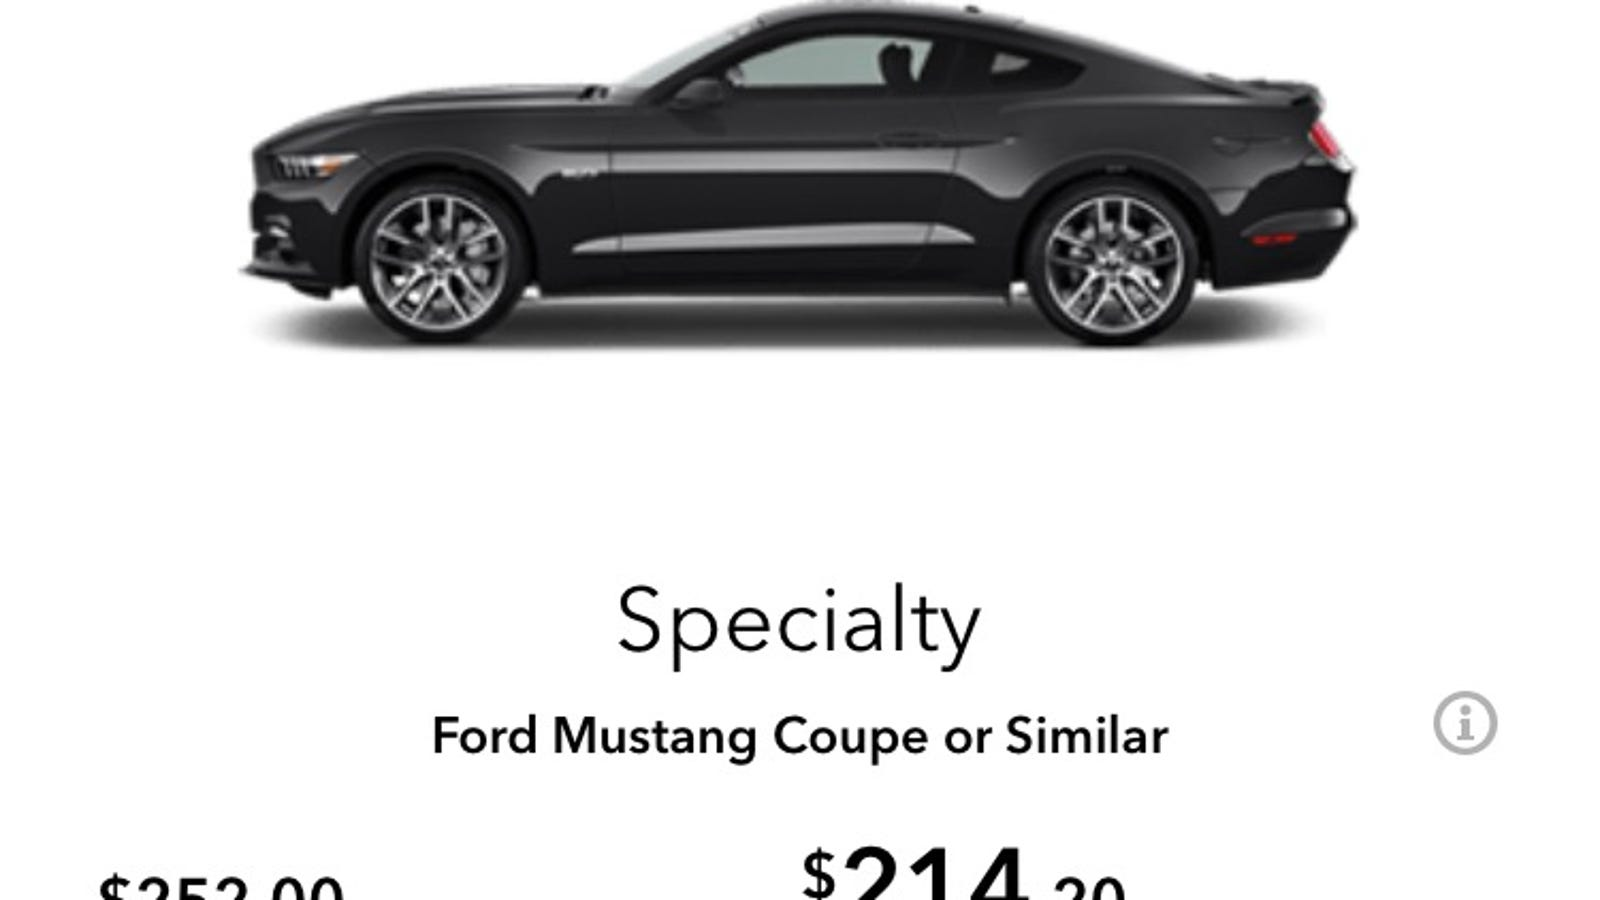 Anyone Ever A Mustang Coupe Or Similar From Avis Ok I Ed It Pre Paid